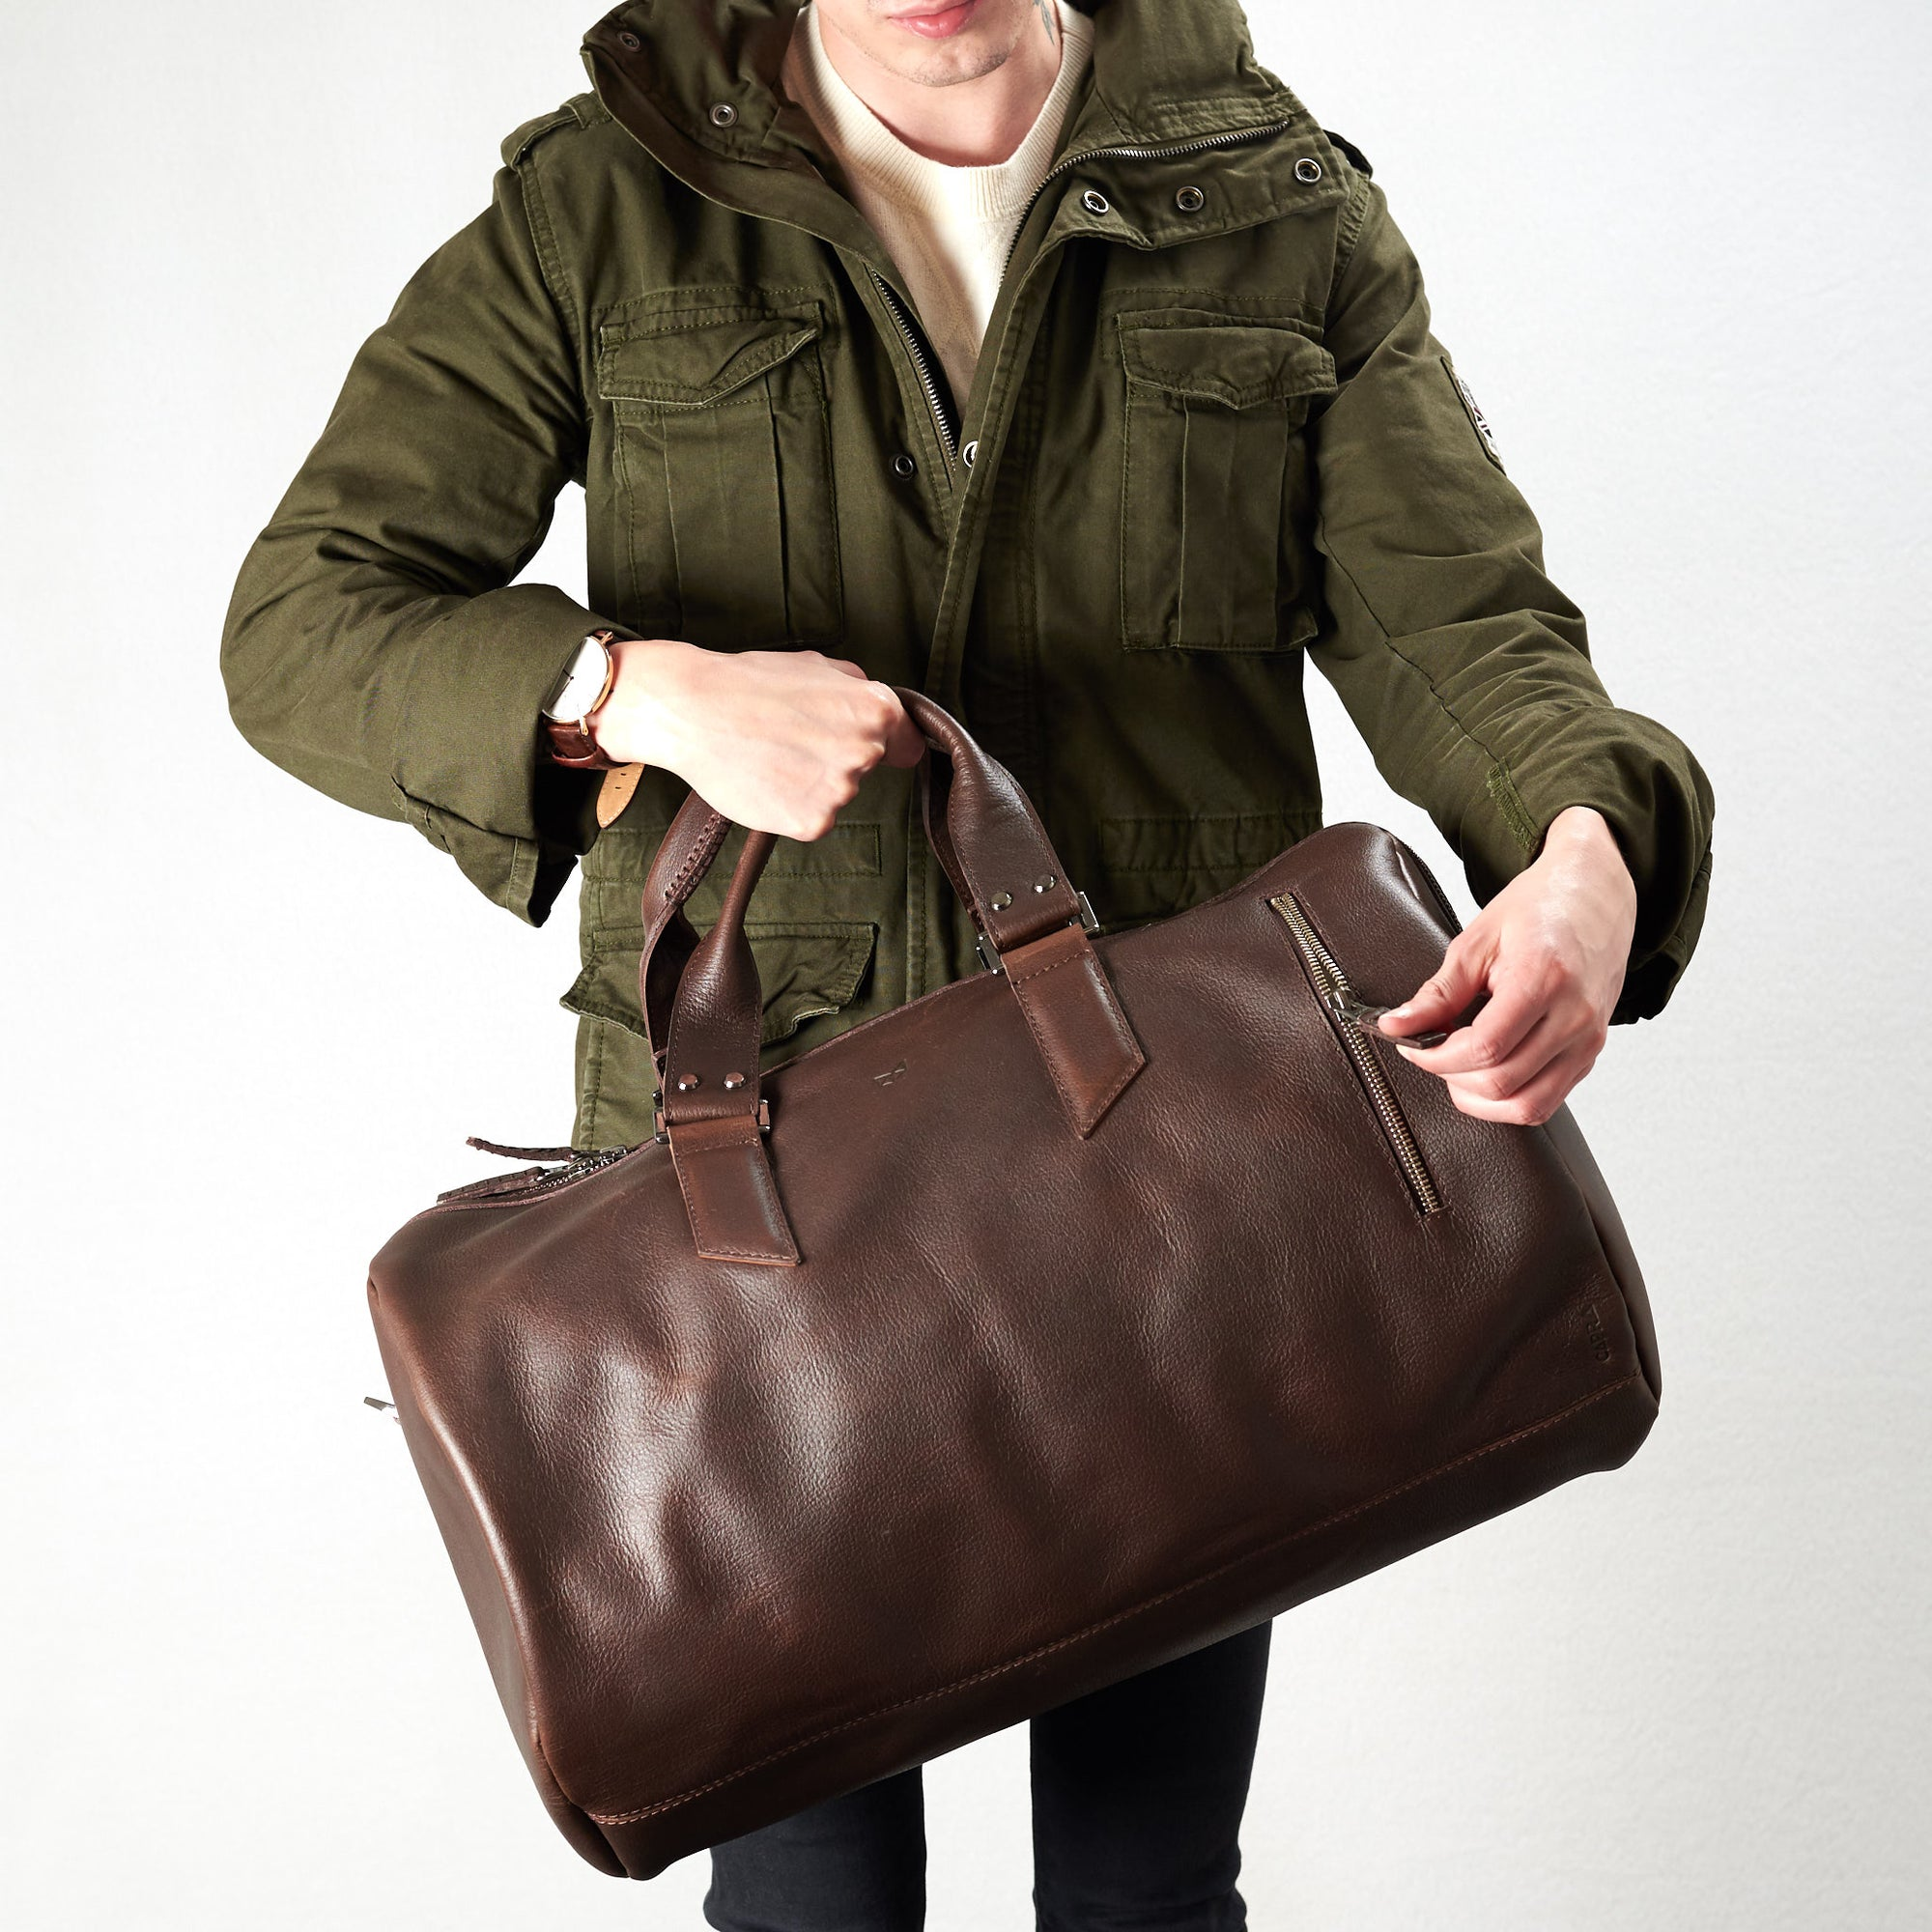 Substantial Duffle Bag by Capra Leather